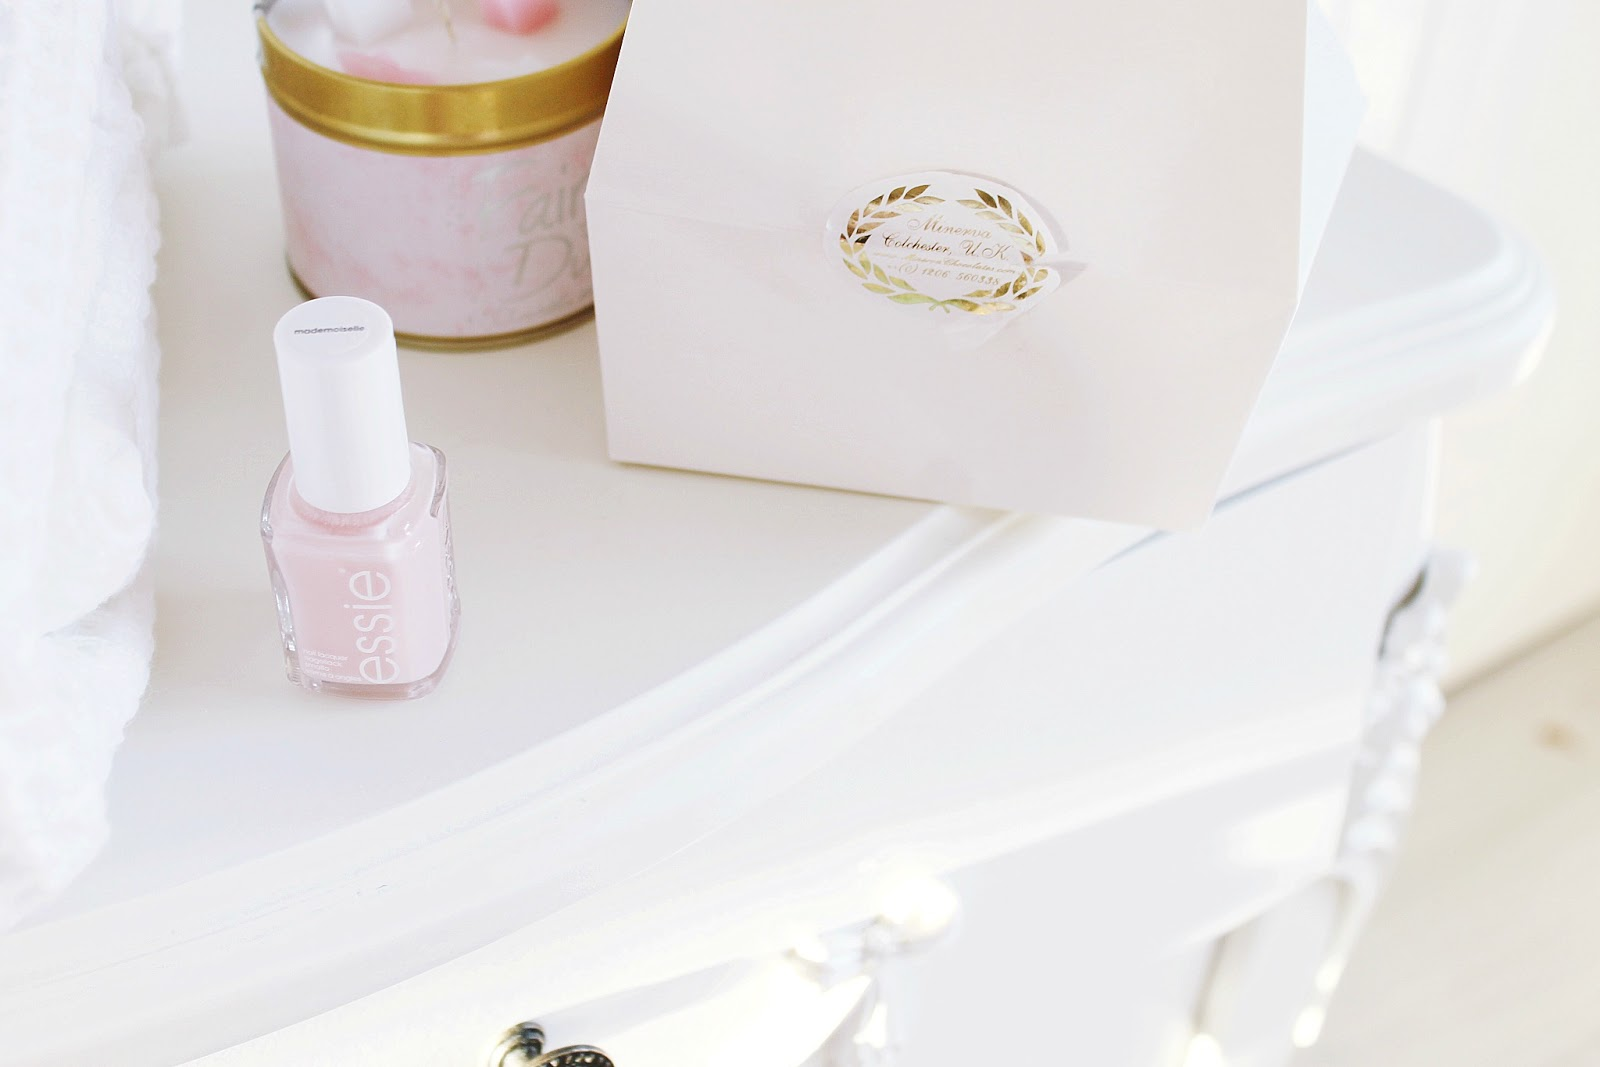 Marie Antoinette blog beauty routine. Vintage girly aesthetic.